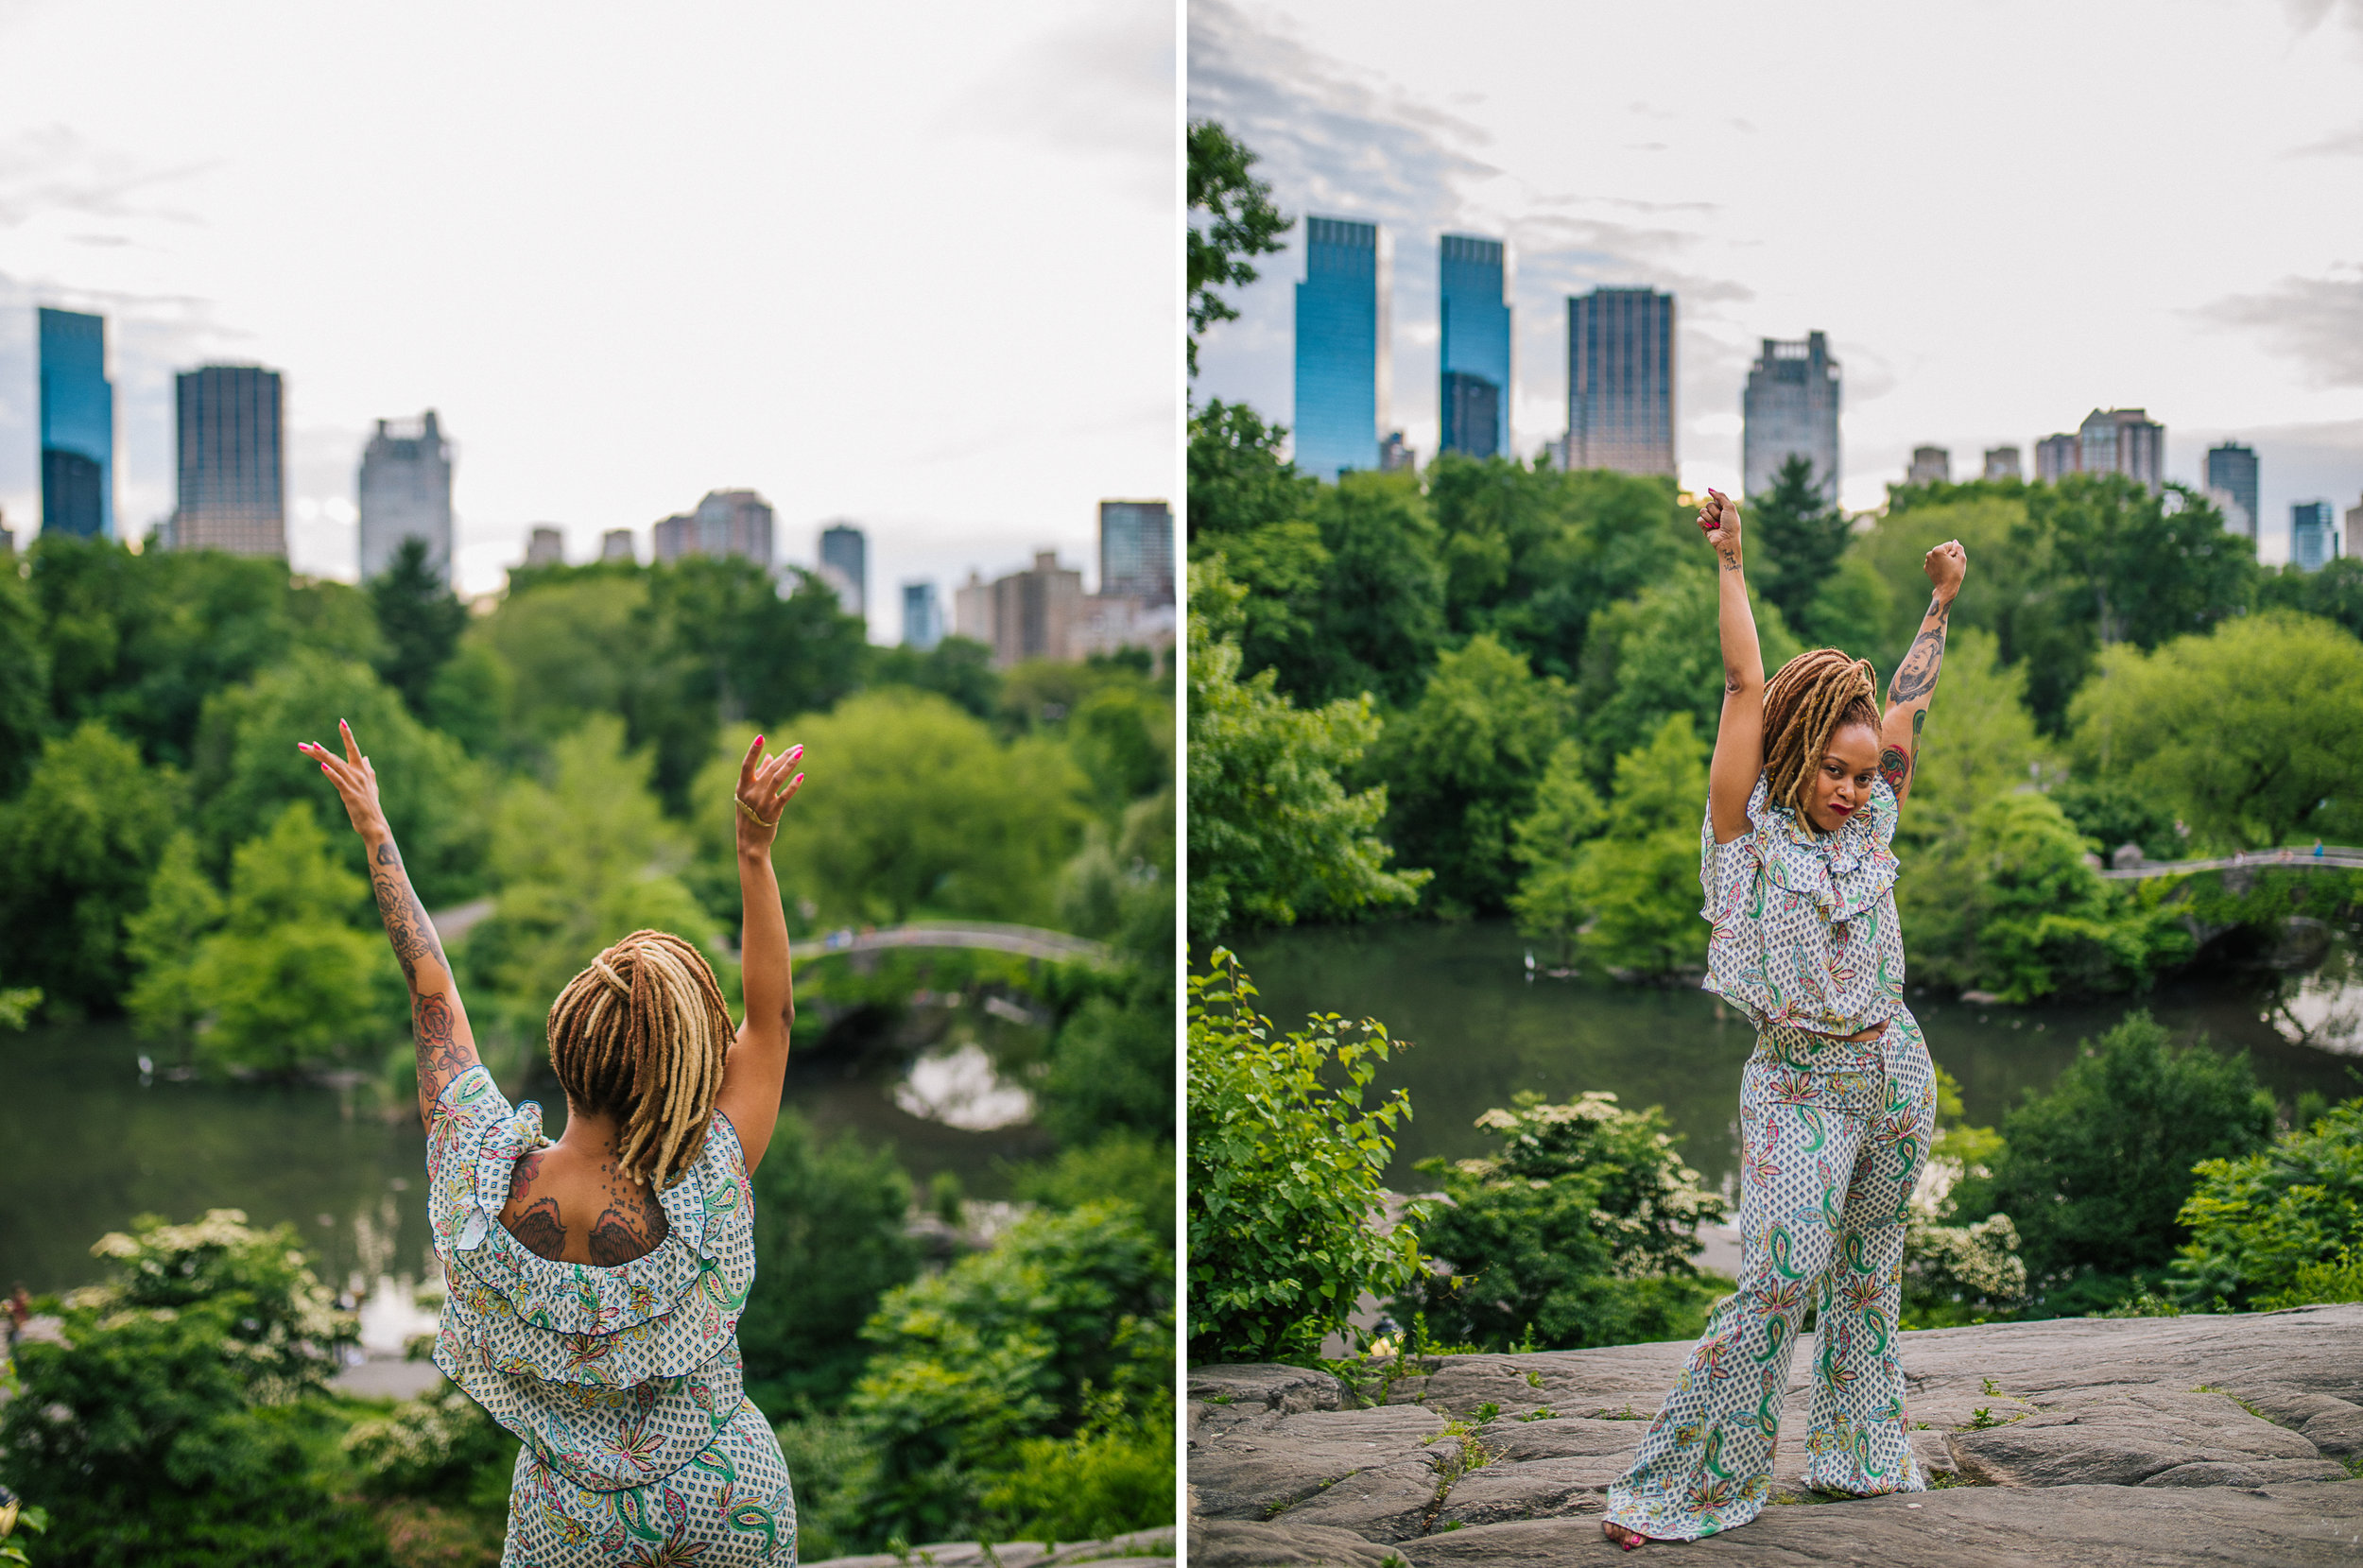 central_park_nyc_portraits_1.jpg